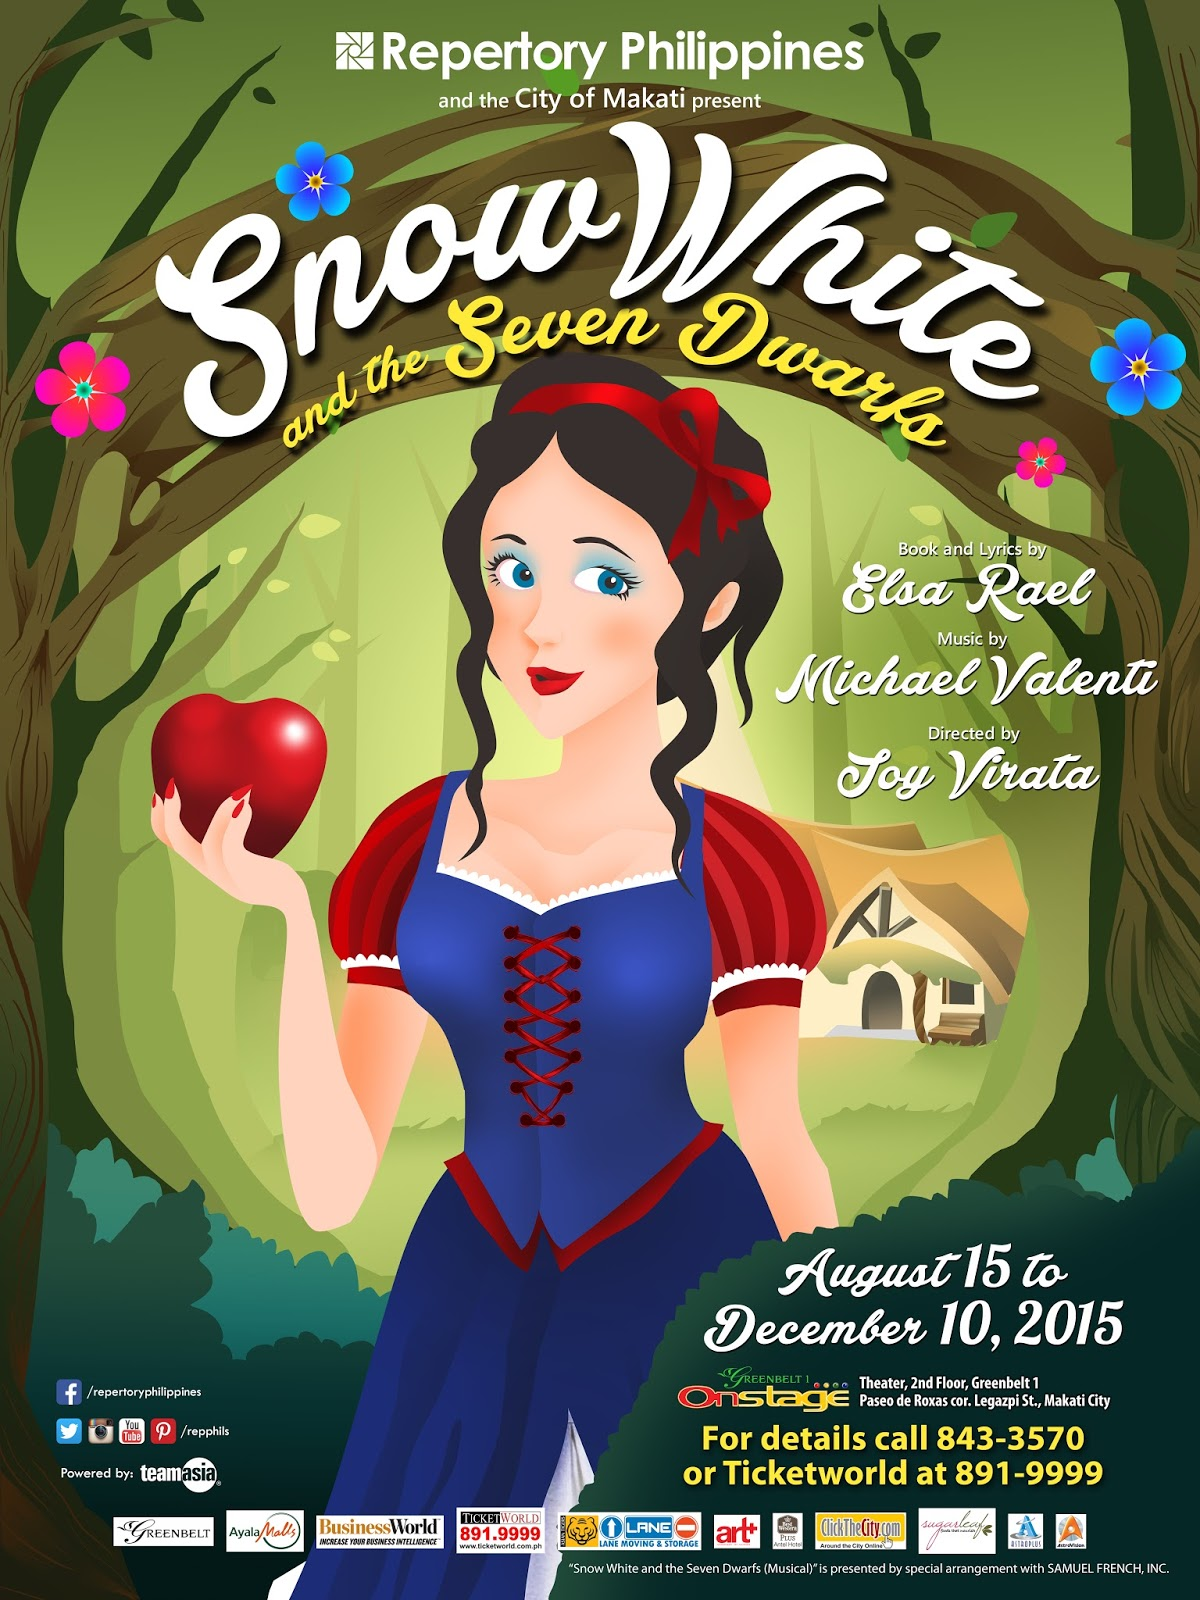 Repertory Philippines brings the classic story of Snow White and the